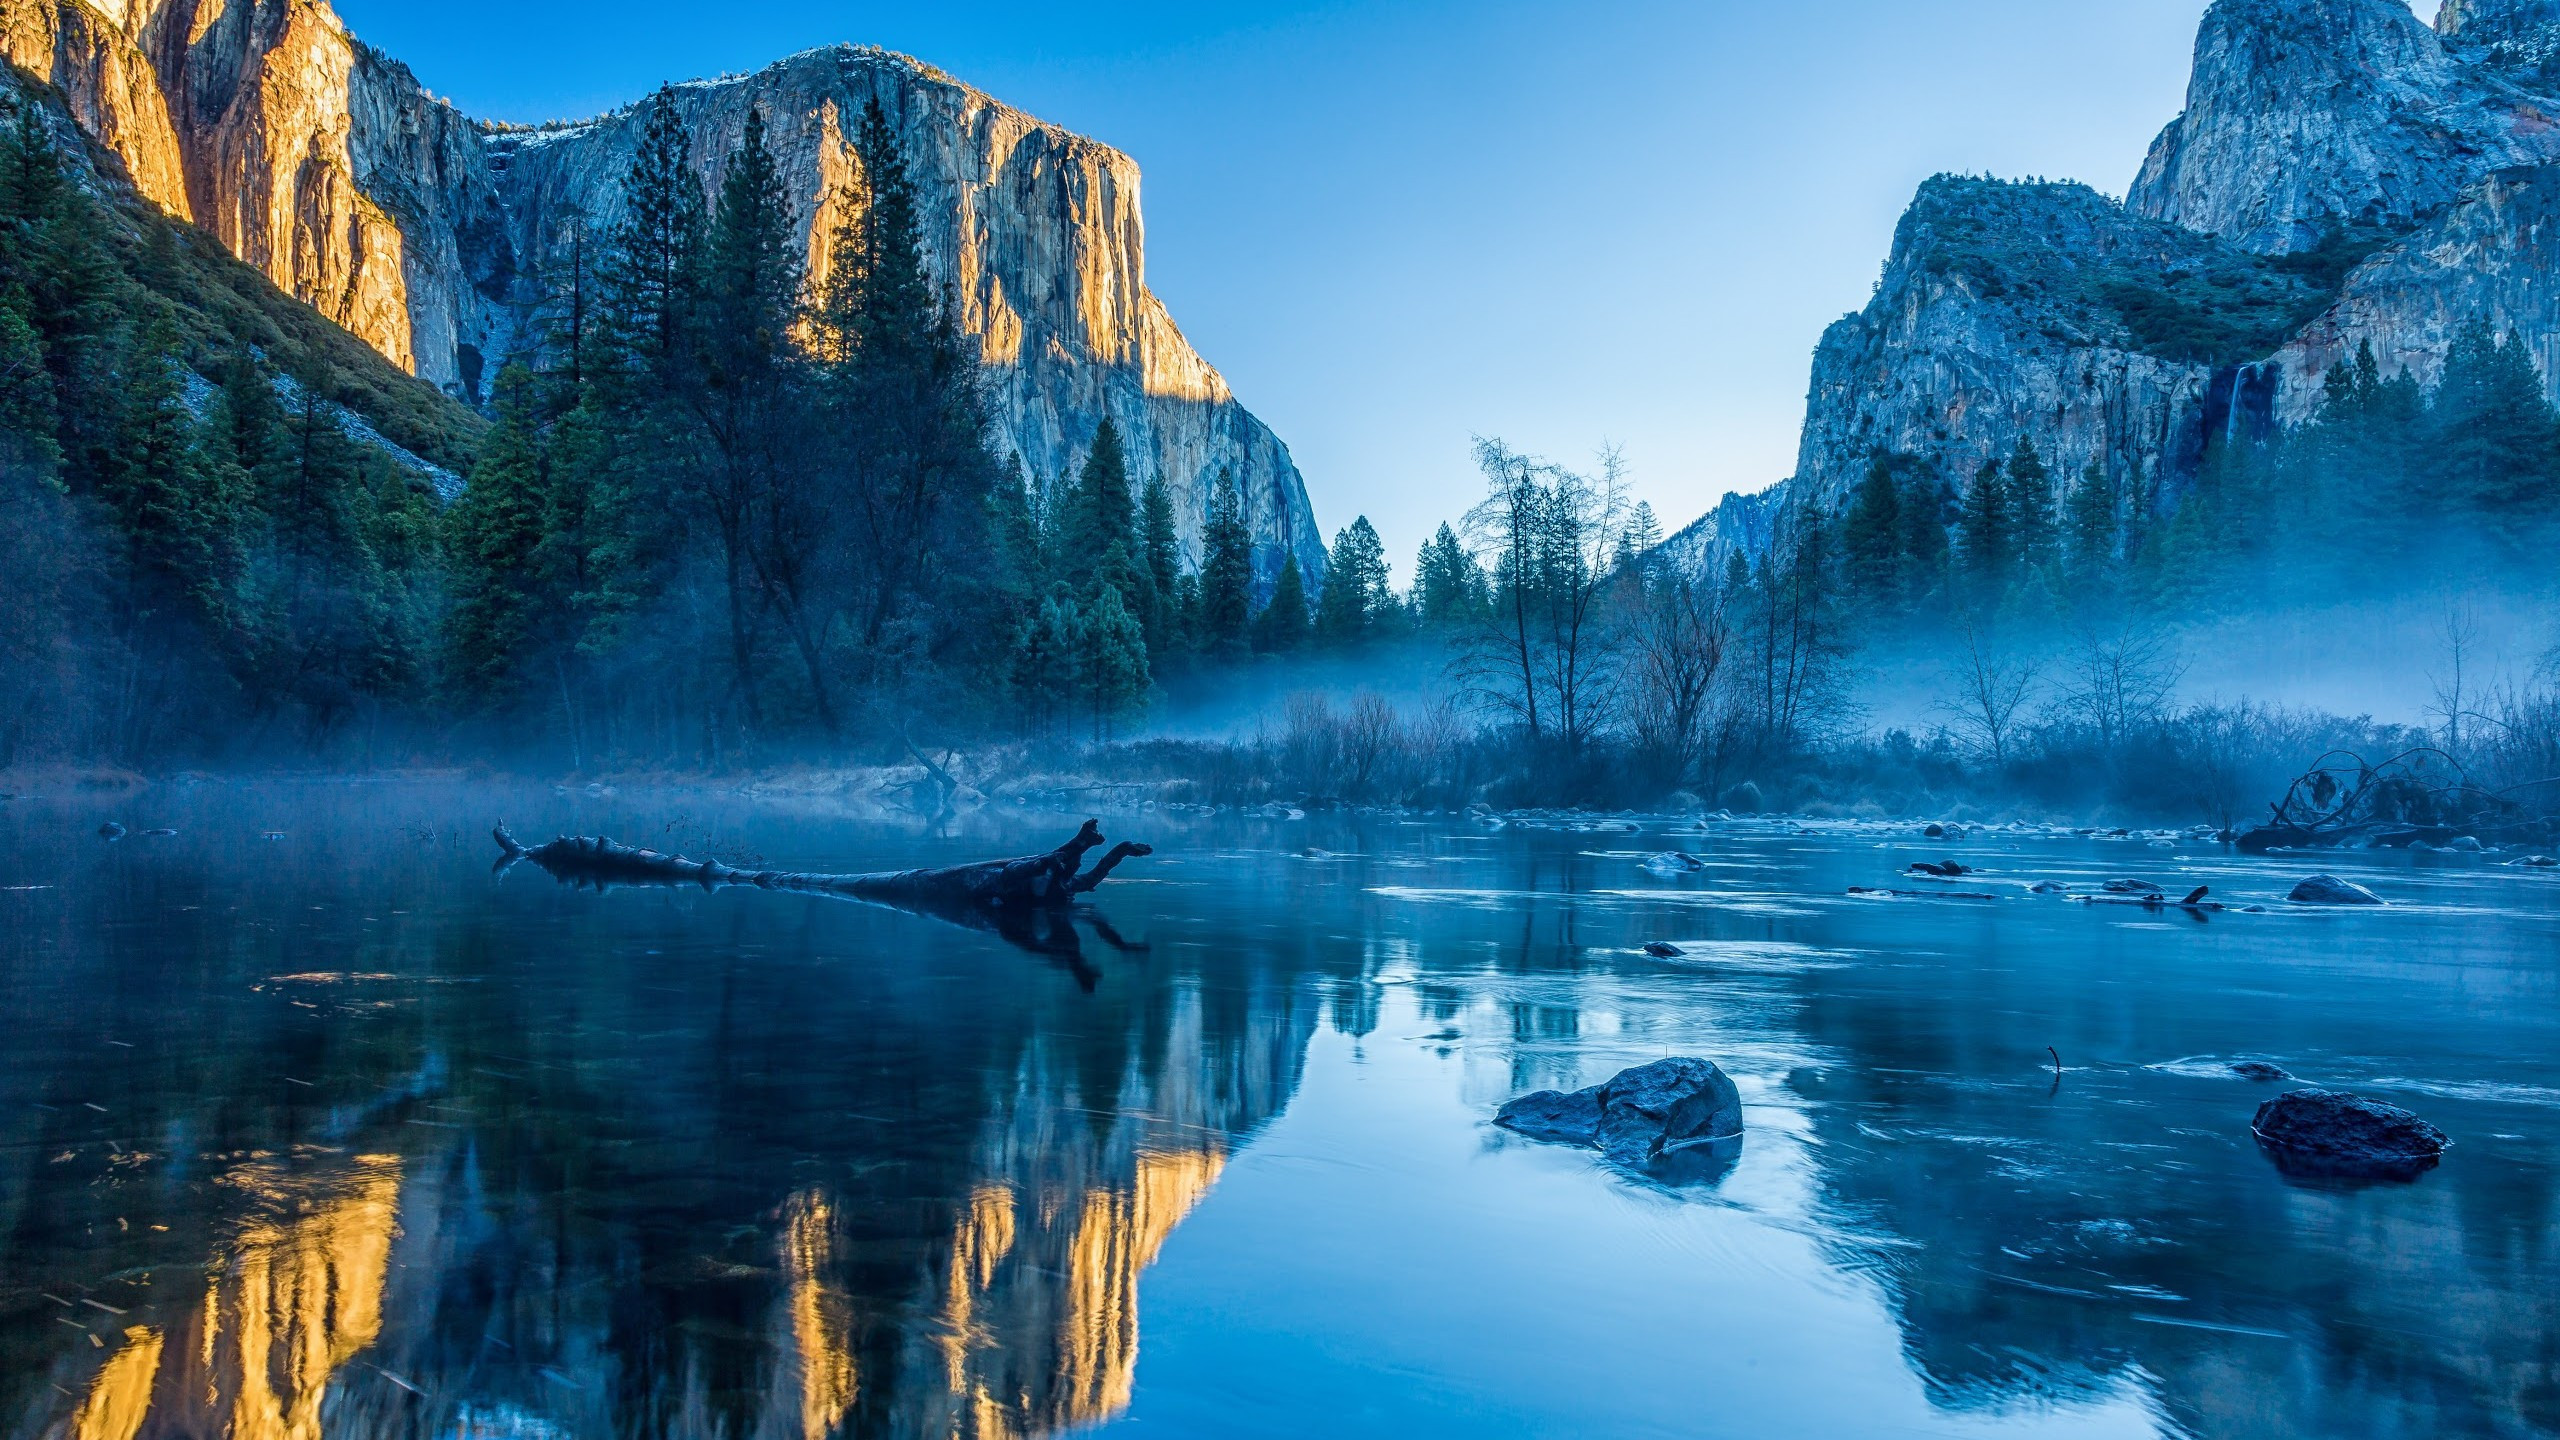 2560x1440 Mac Os X 4k Wallpaper Amazing Wallpaper Yosemite El Capitan Hd 4k Wallpaper  Winter